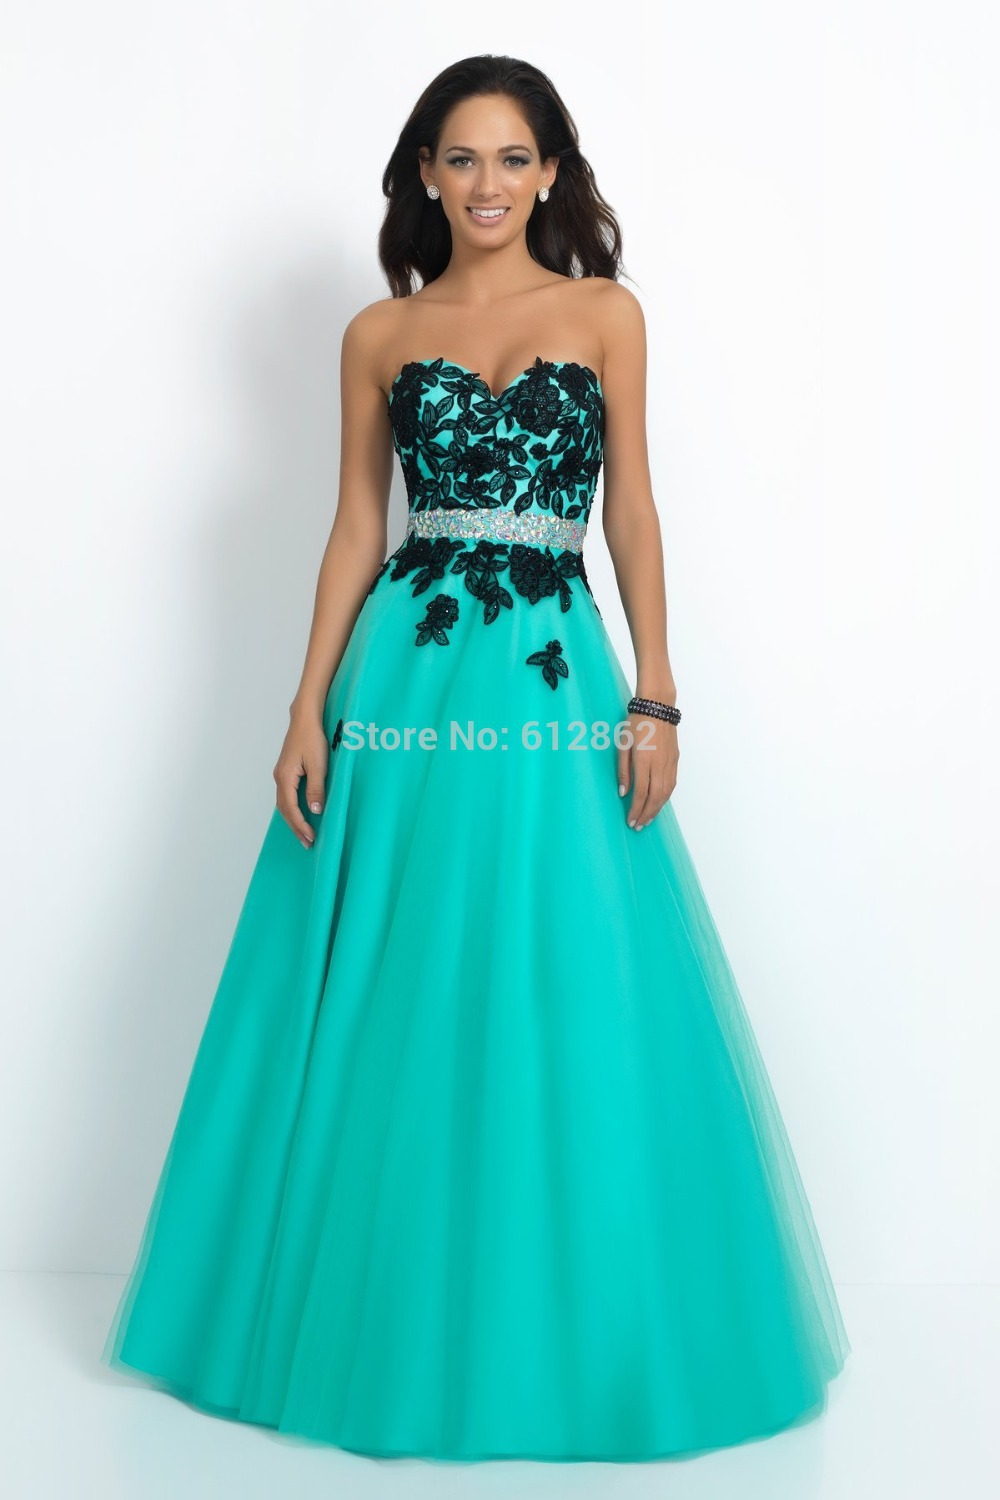 Strapless No Train Black Lace Aqua Blue Wedding Dresses 2015 Sexy: Turquoise Black And White Wedding Dresses At Websimilar.org